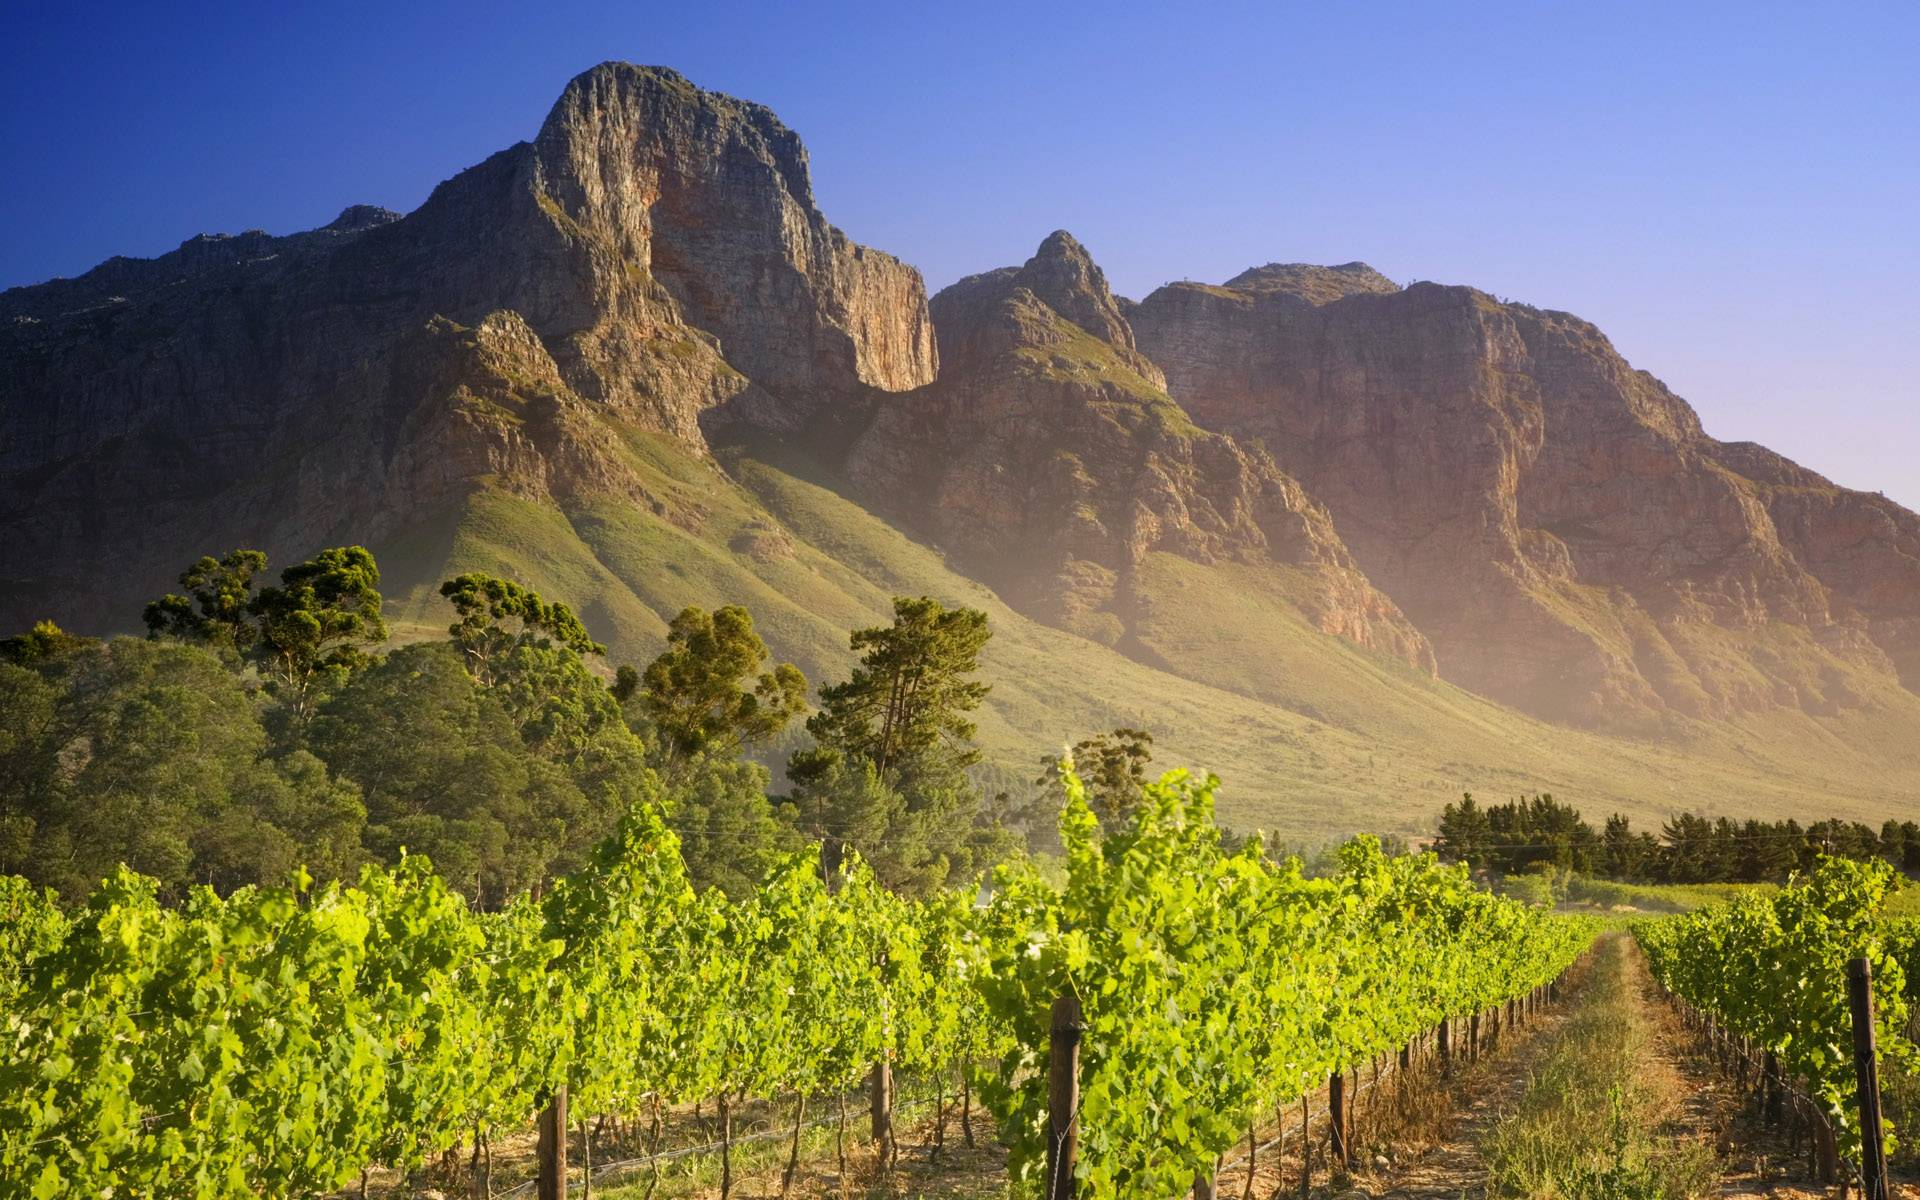 Vineyard South Africa wallpaper - 179928